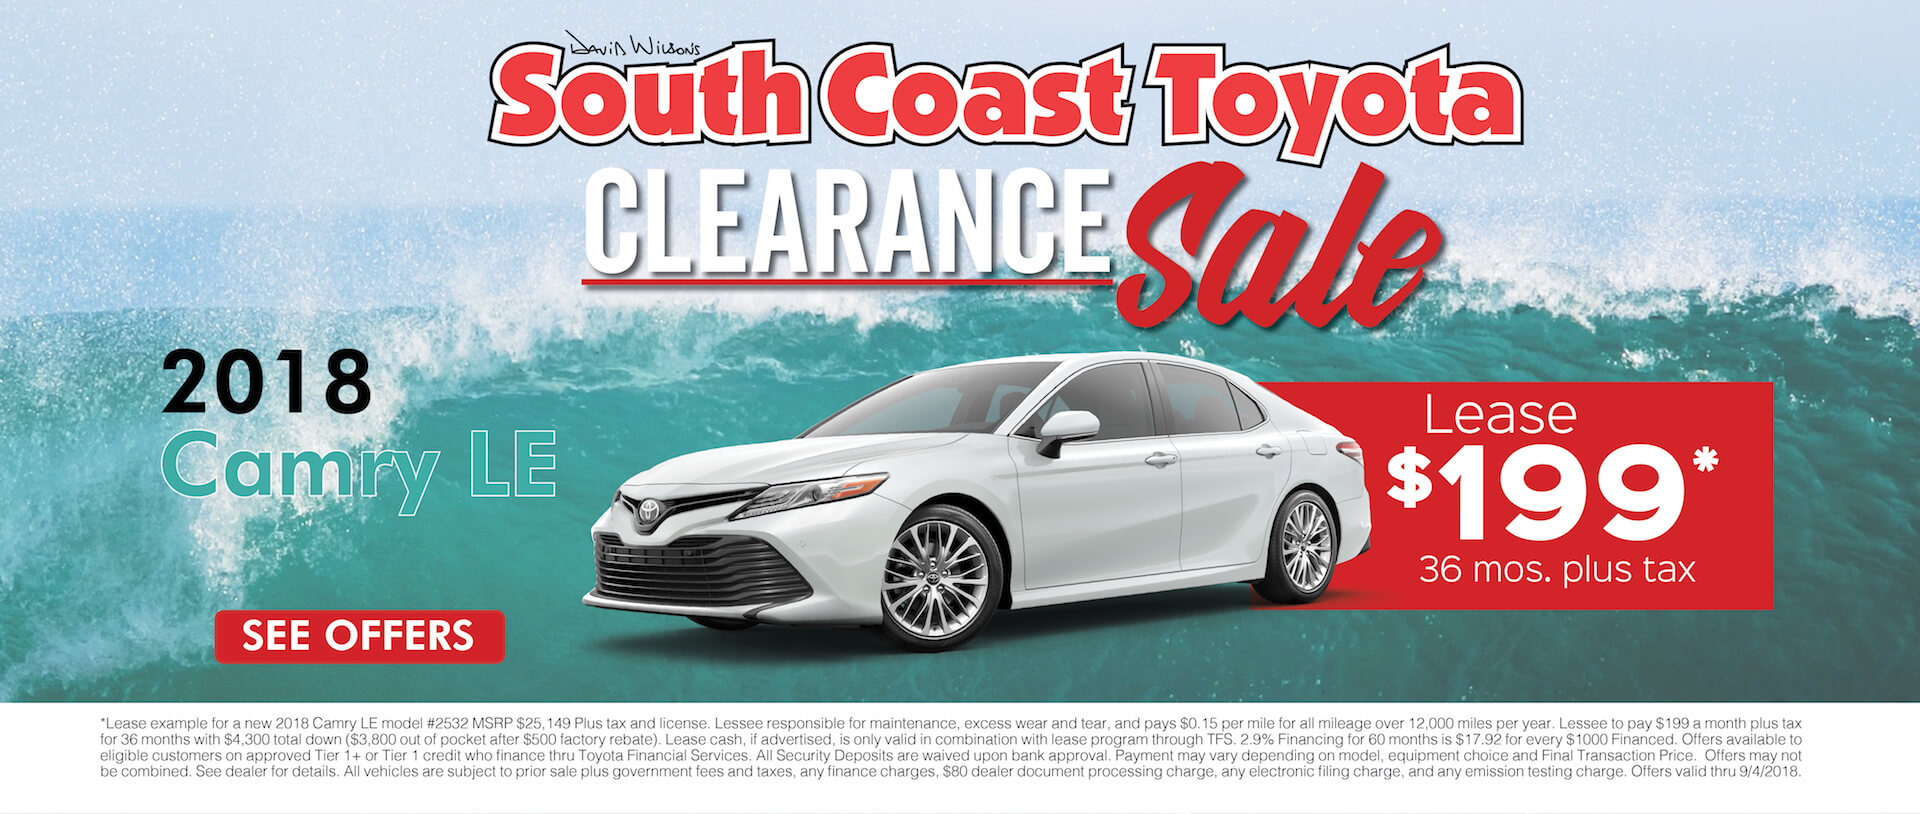 Toyota Camry $199 Lease